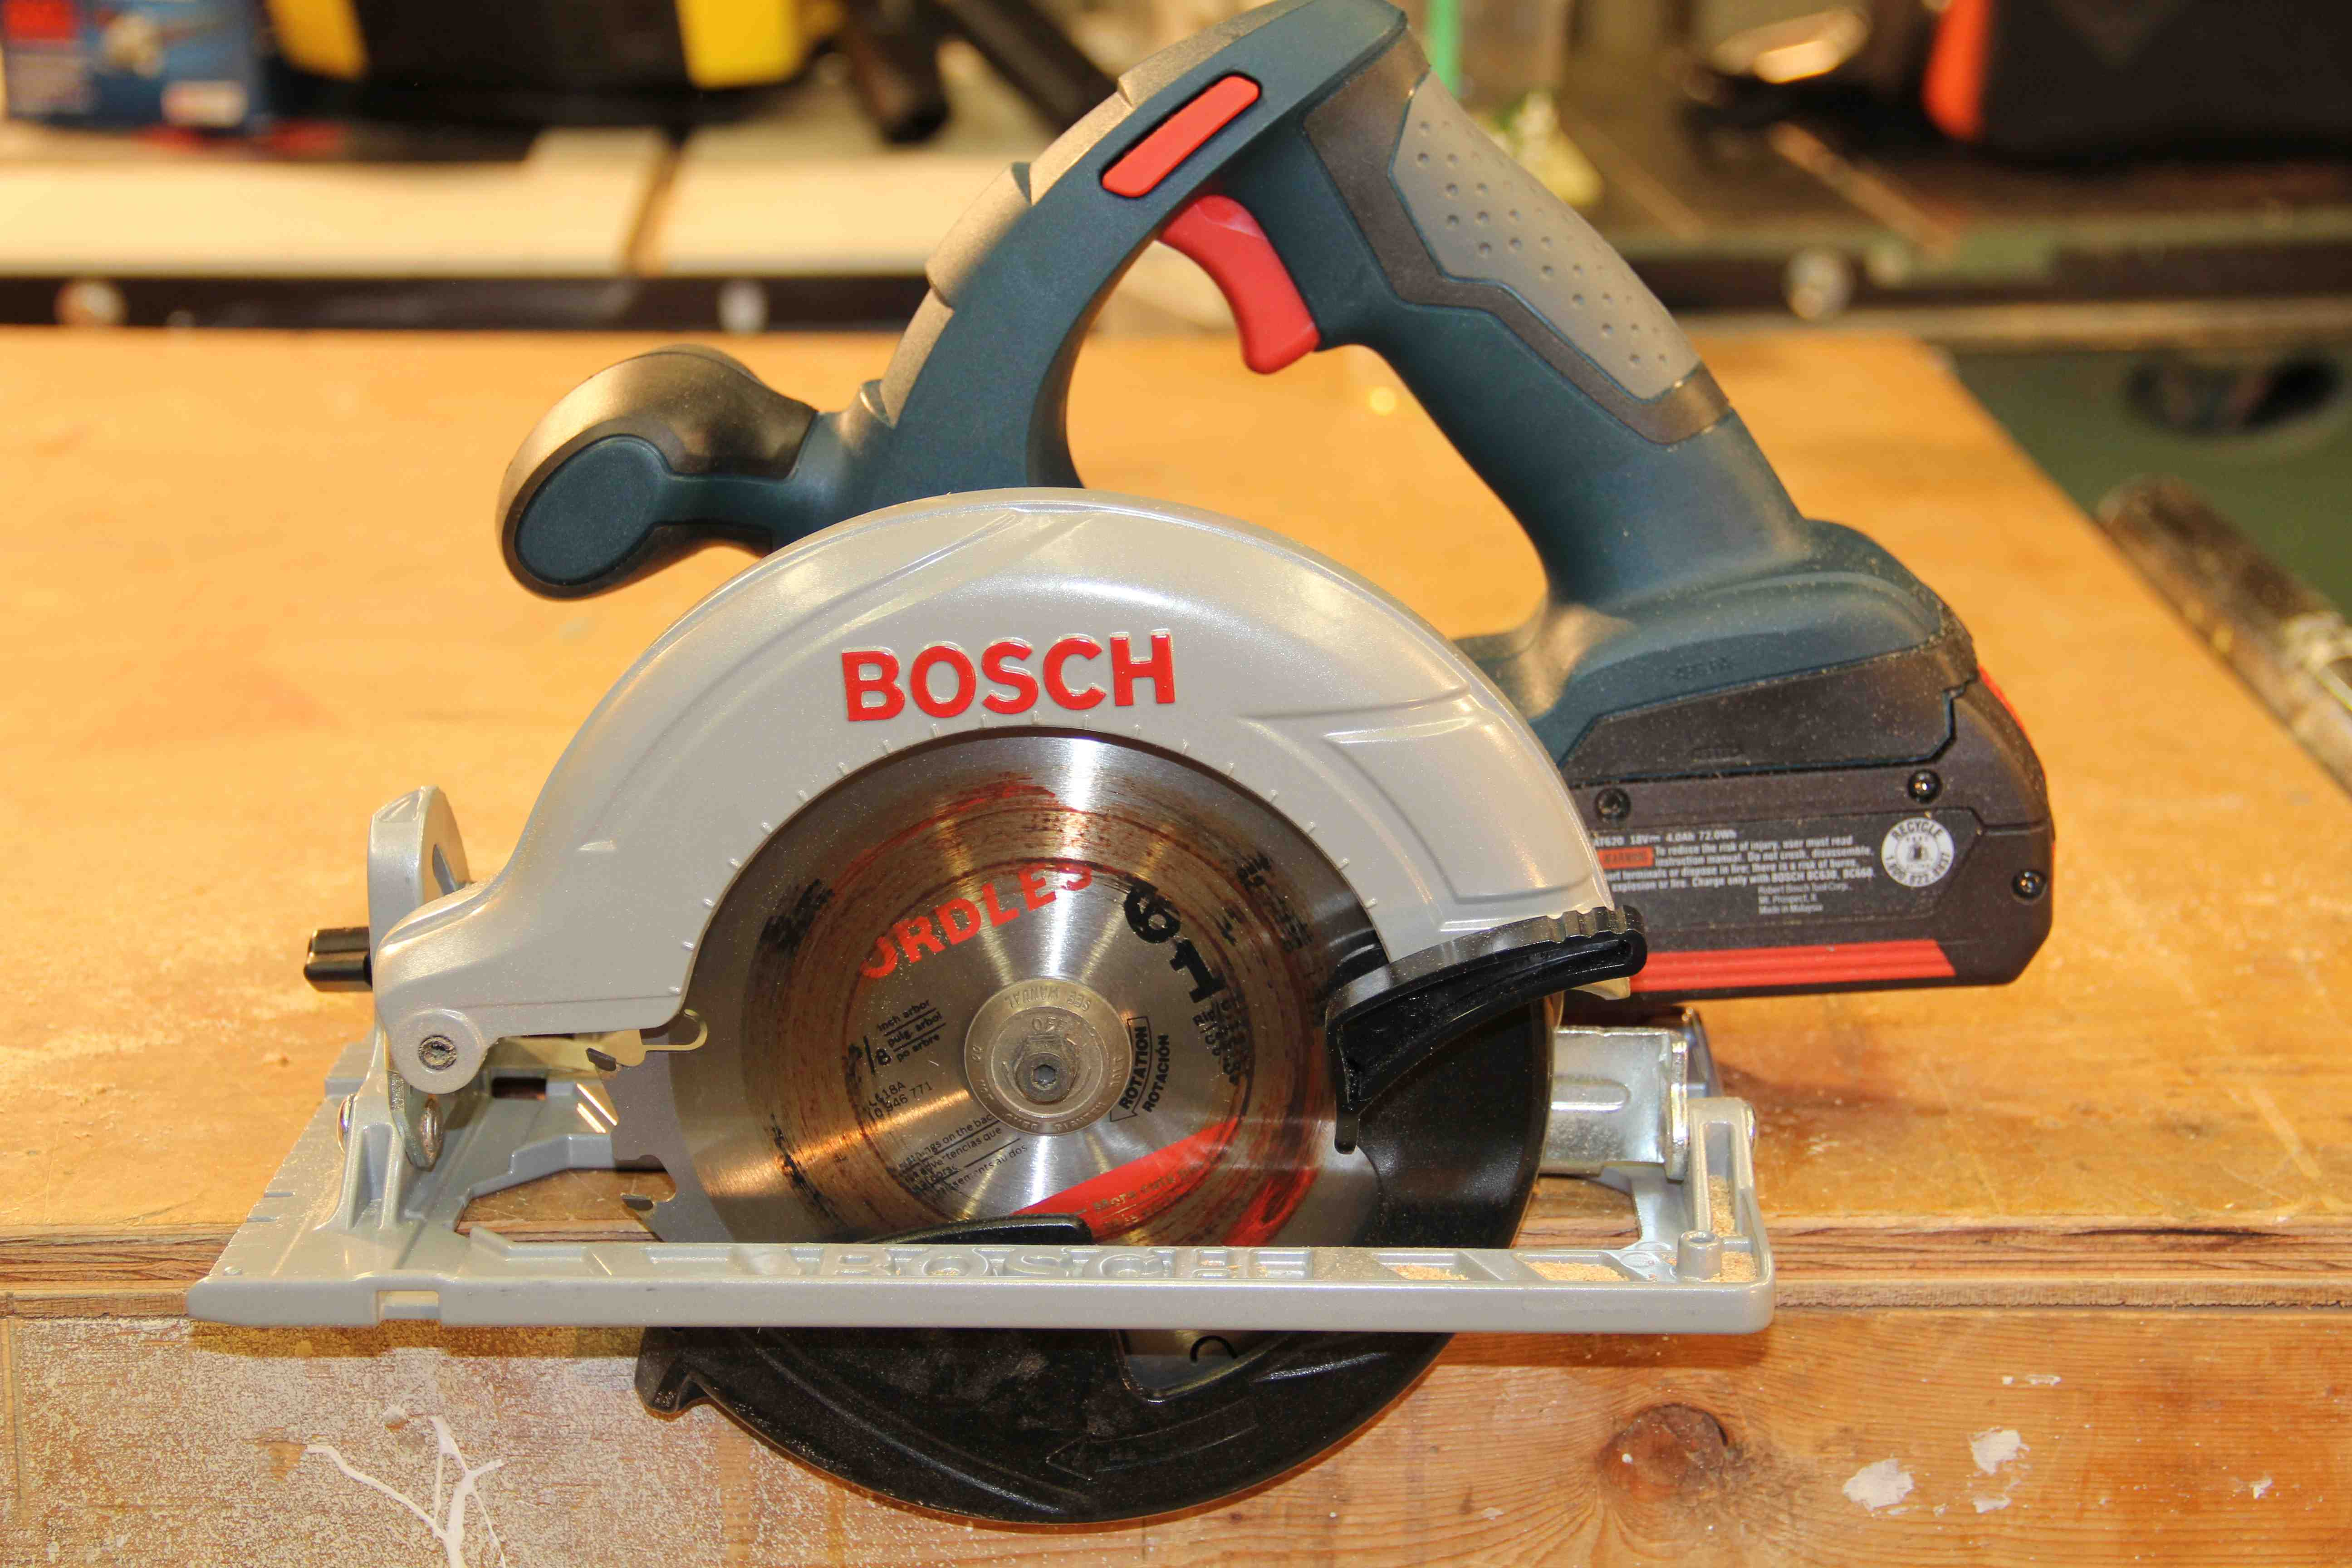 Bosch Ccs180 Circular Saw Review A Concord Carpenter